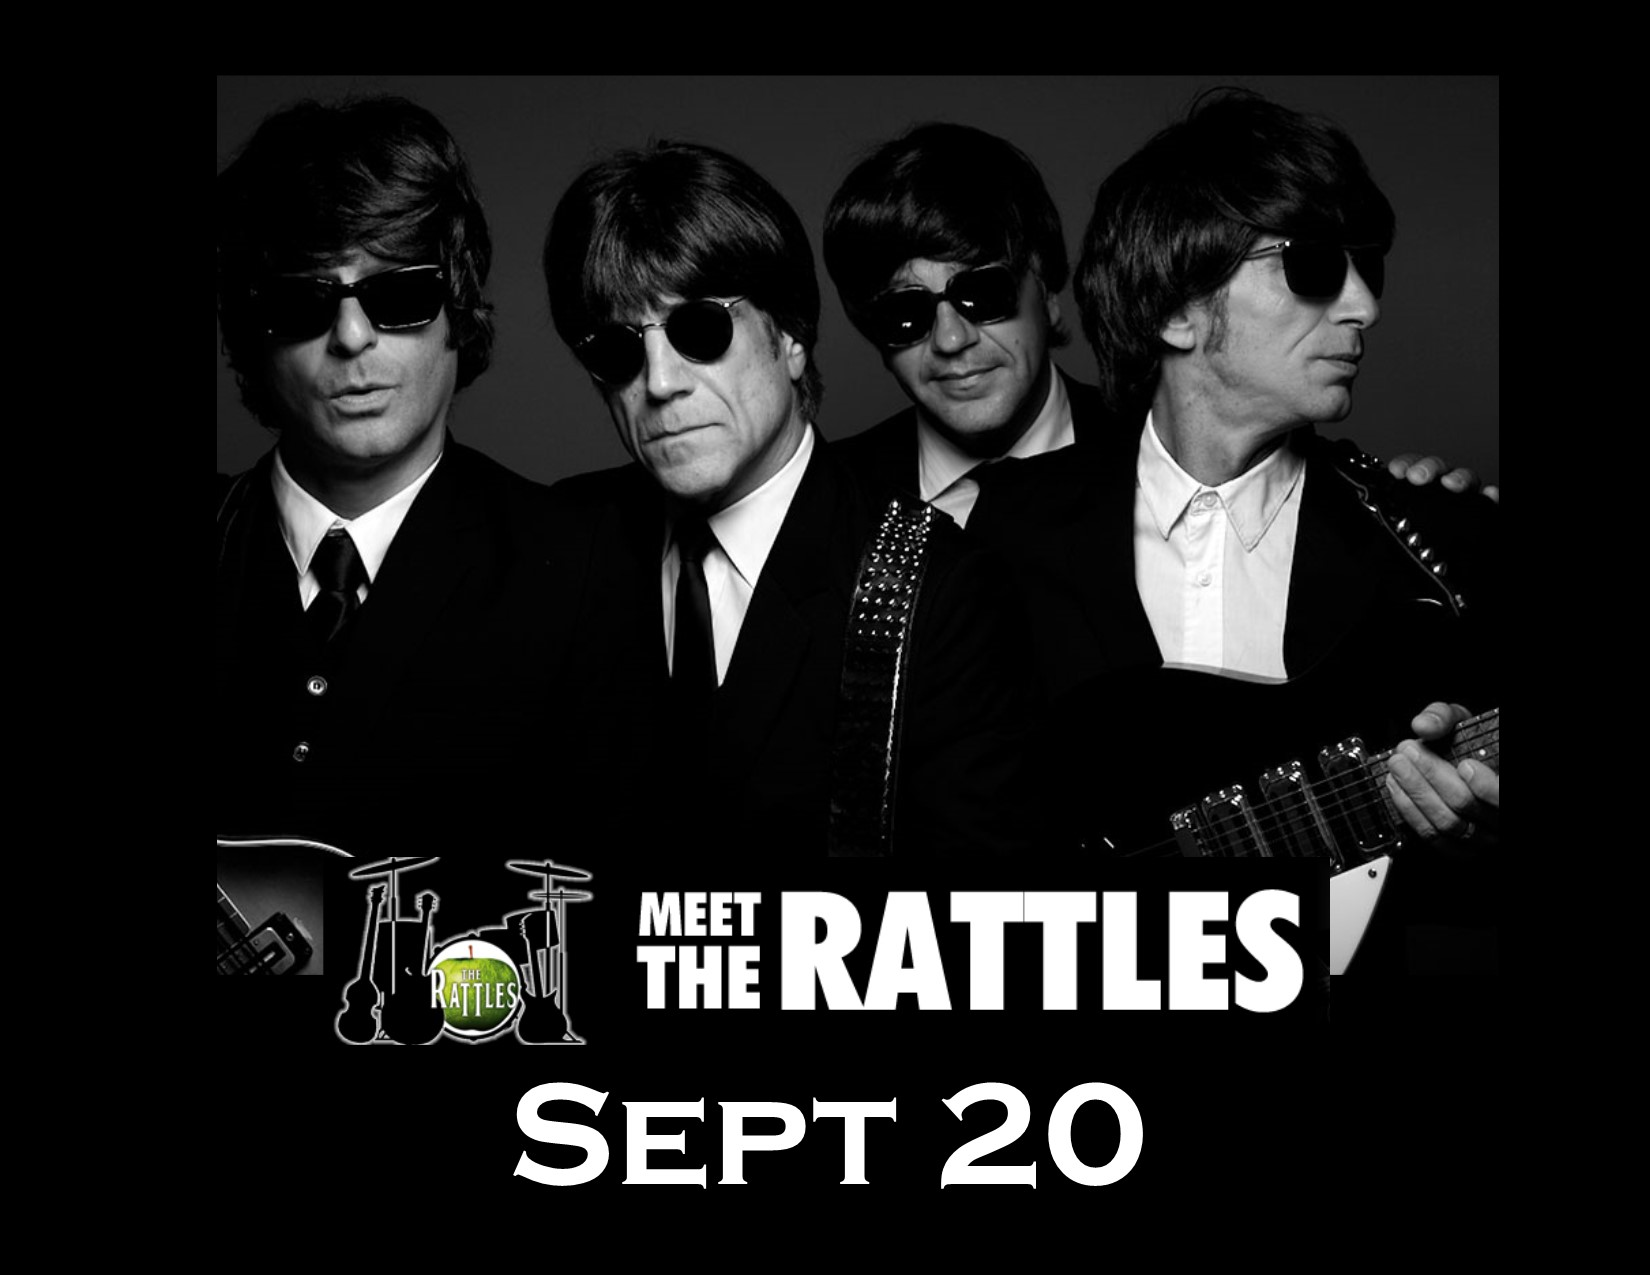 THE RATTLES - Canada's Most Authentic Tribute to THE BEATLES